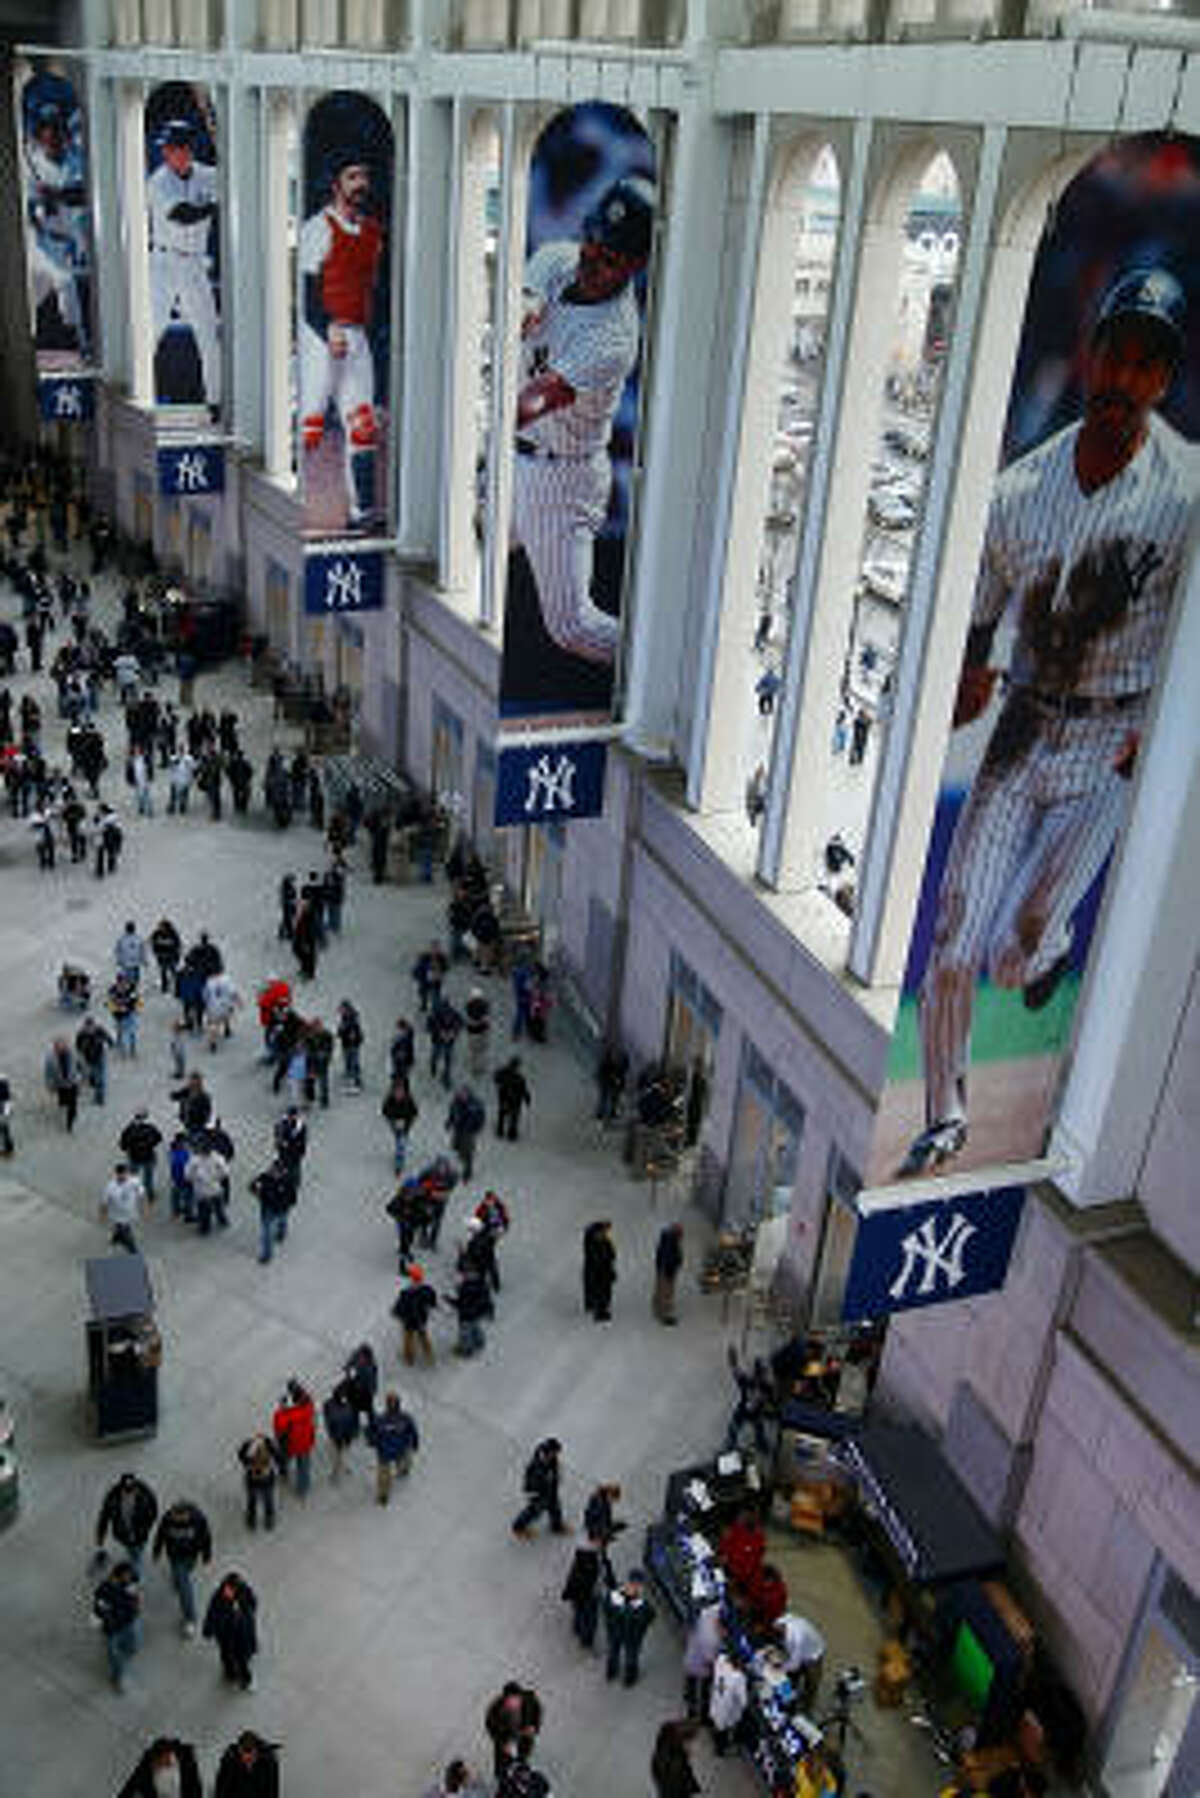 NEW YORK - APRIL 03: Fans enjoy the new Yankee stadium concourse area prior to the start of the game between the New York Yankees and the Chicago Cubs on April 3, 2009 in the Bronx borough of New York City. The exhibition game is the first game to be played at the new Yankee Stadium.